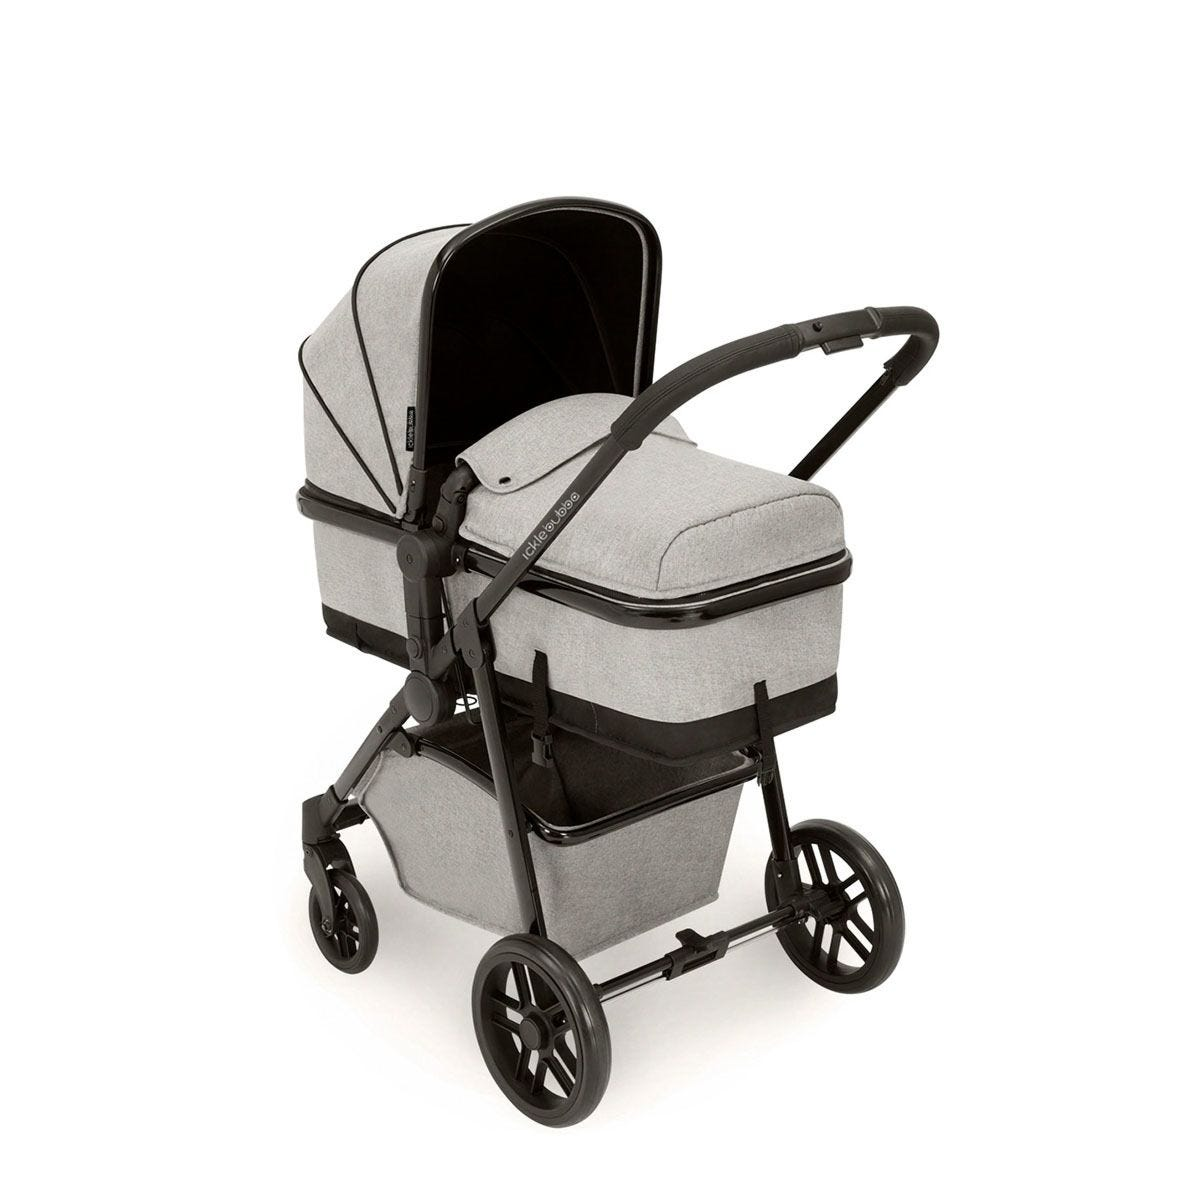 Ickle Bubba Moon 3 in 1 Travel System ISOFIX - Silver Grey on Black with Black Handles